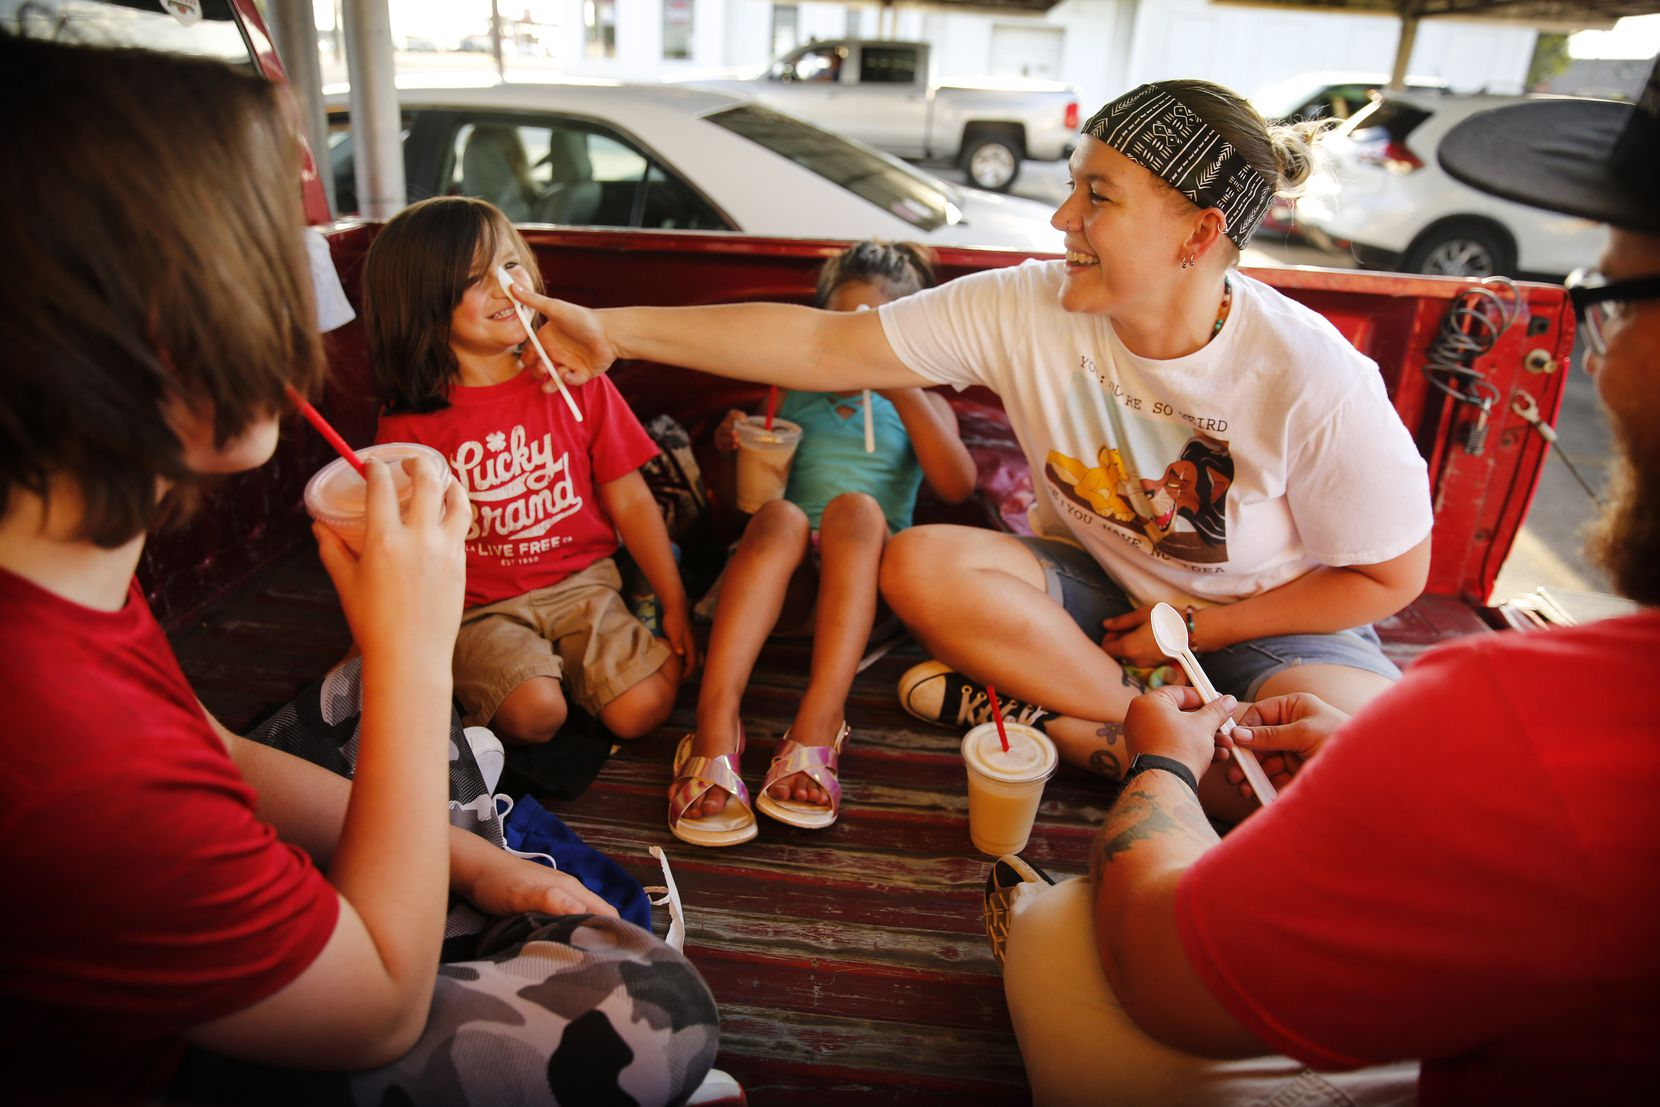 Erin Molina (facing, right) shows her son Ian Molina, 4, how to balance a spoon on his nose as they and her friend Logan Williams (right) and his younger brother Colt Turner (left) enjoyed shakes in the bed of their pickup at Keller's Drive-In on Northwest Highway in Dallas, Thursday, May 14, 2020. (Tom Fox/The Dallas Morning News)